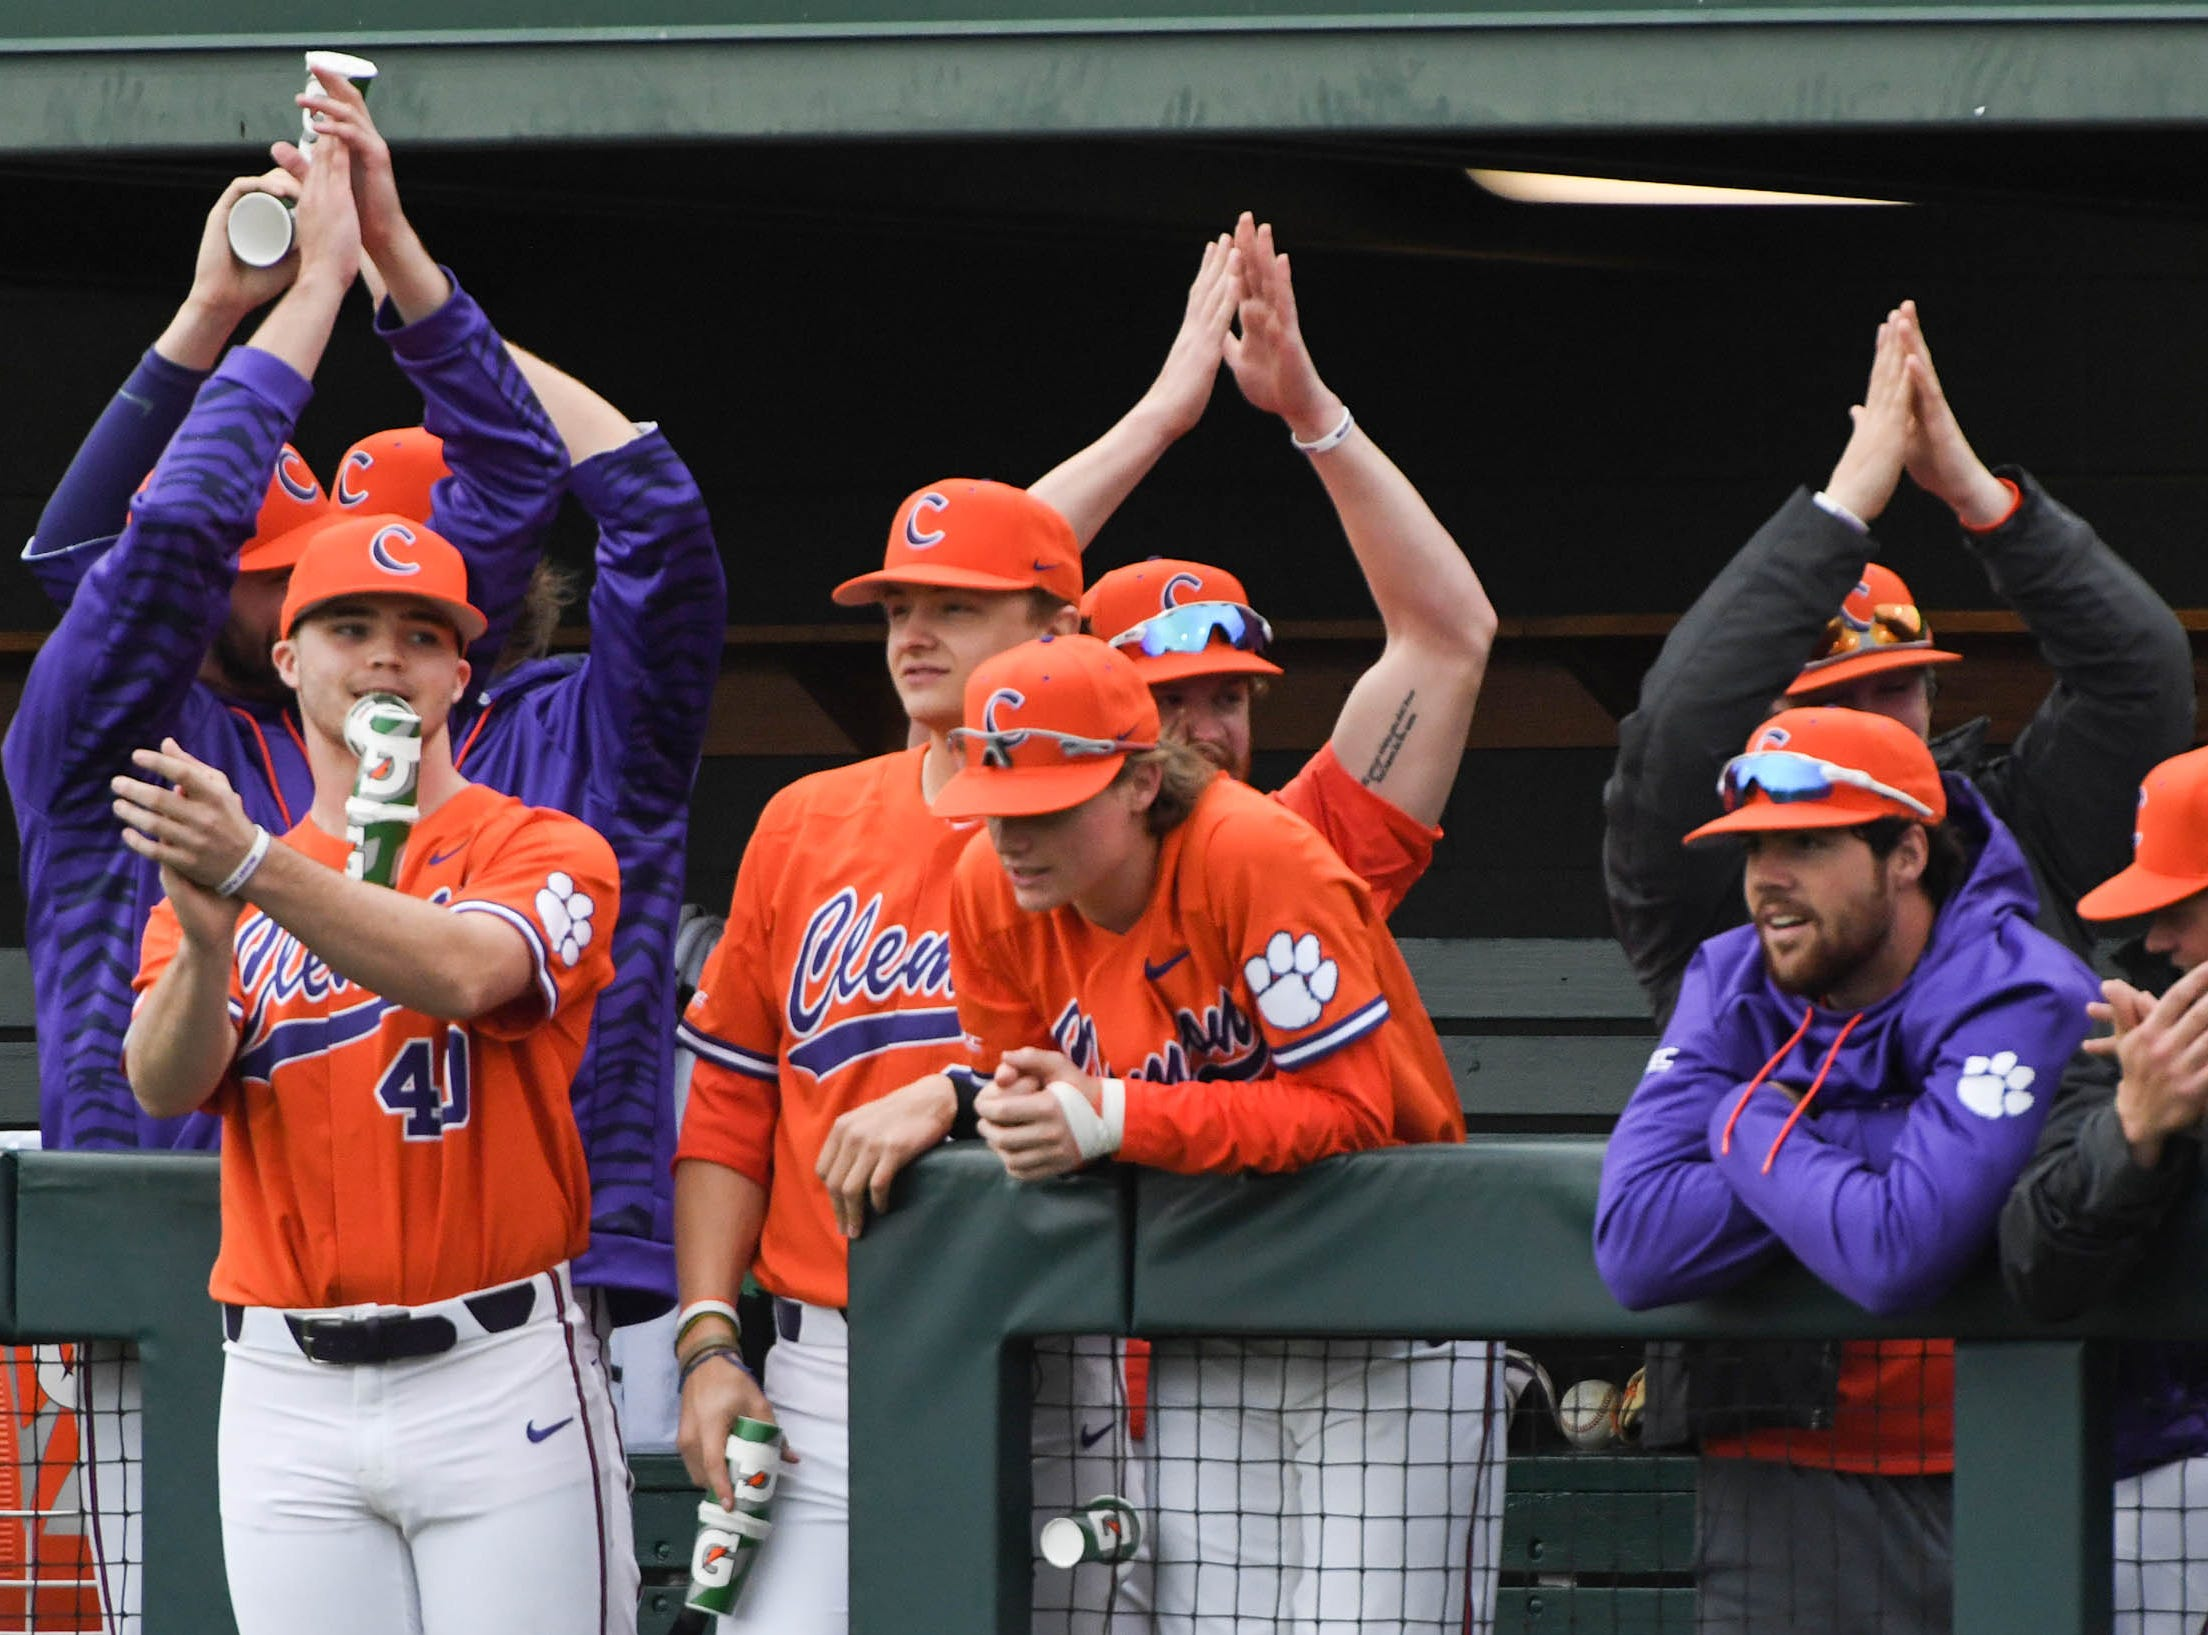 Clemson players clap to a song by Billy Squier playing over the stadium in the game with South Alabama during the bottom of the fourth inning at Doug Kingsmore Stadium in Clemson Friday, February 15, 2019.